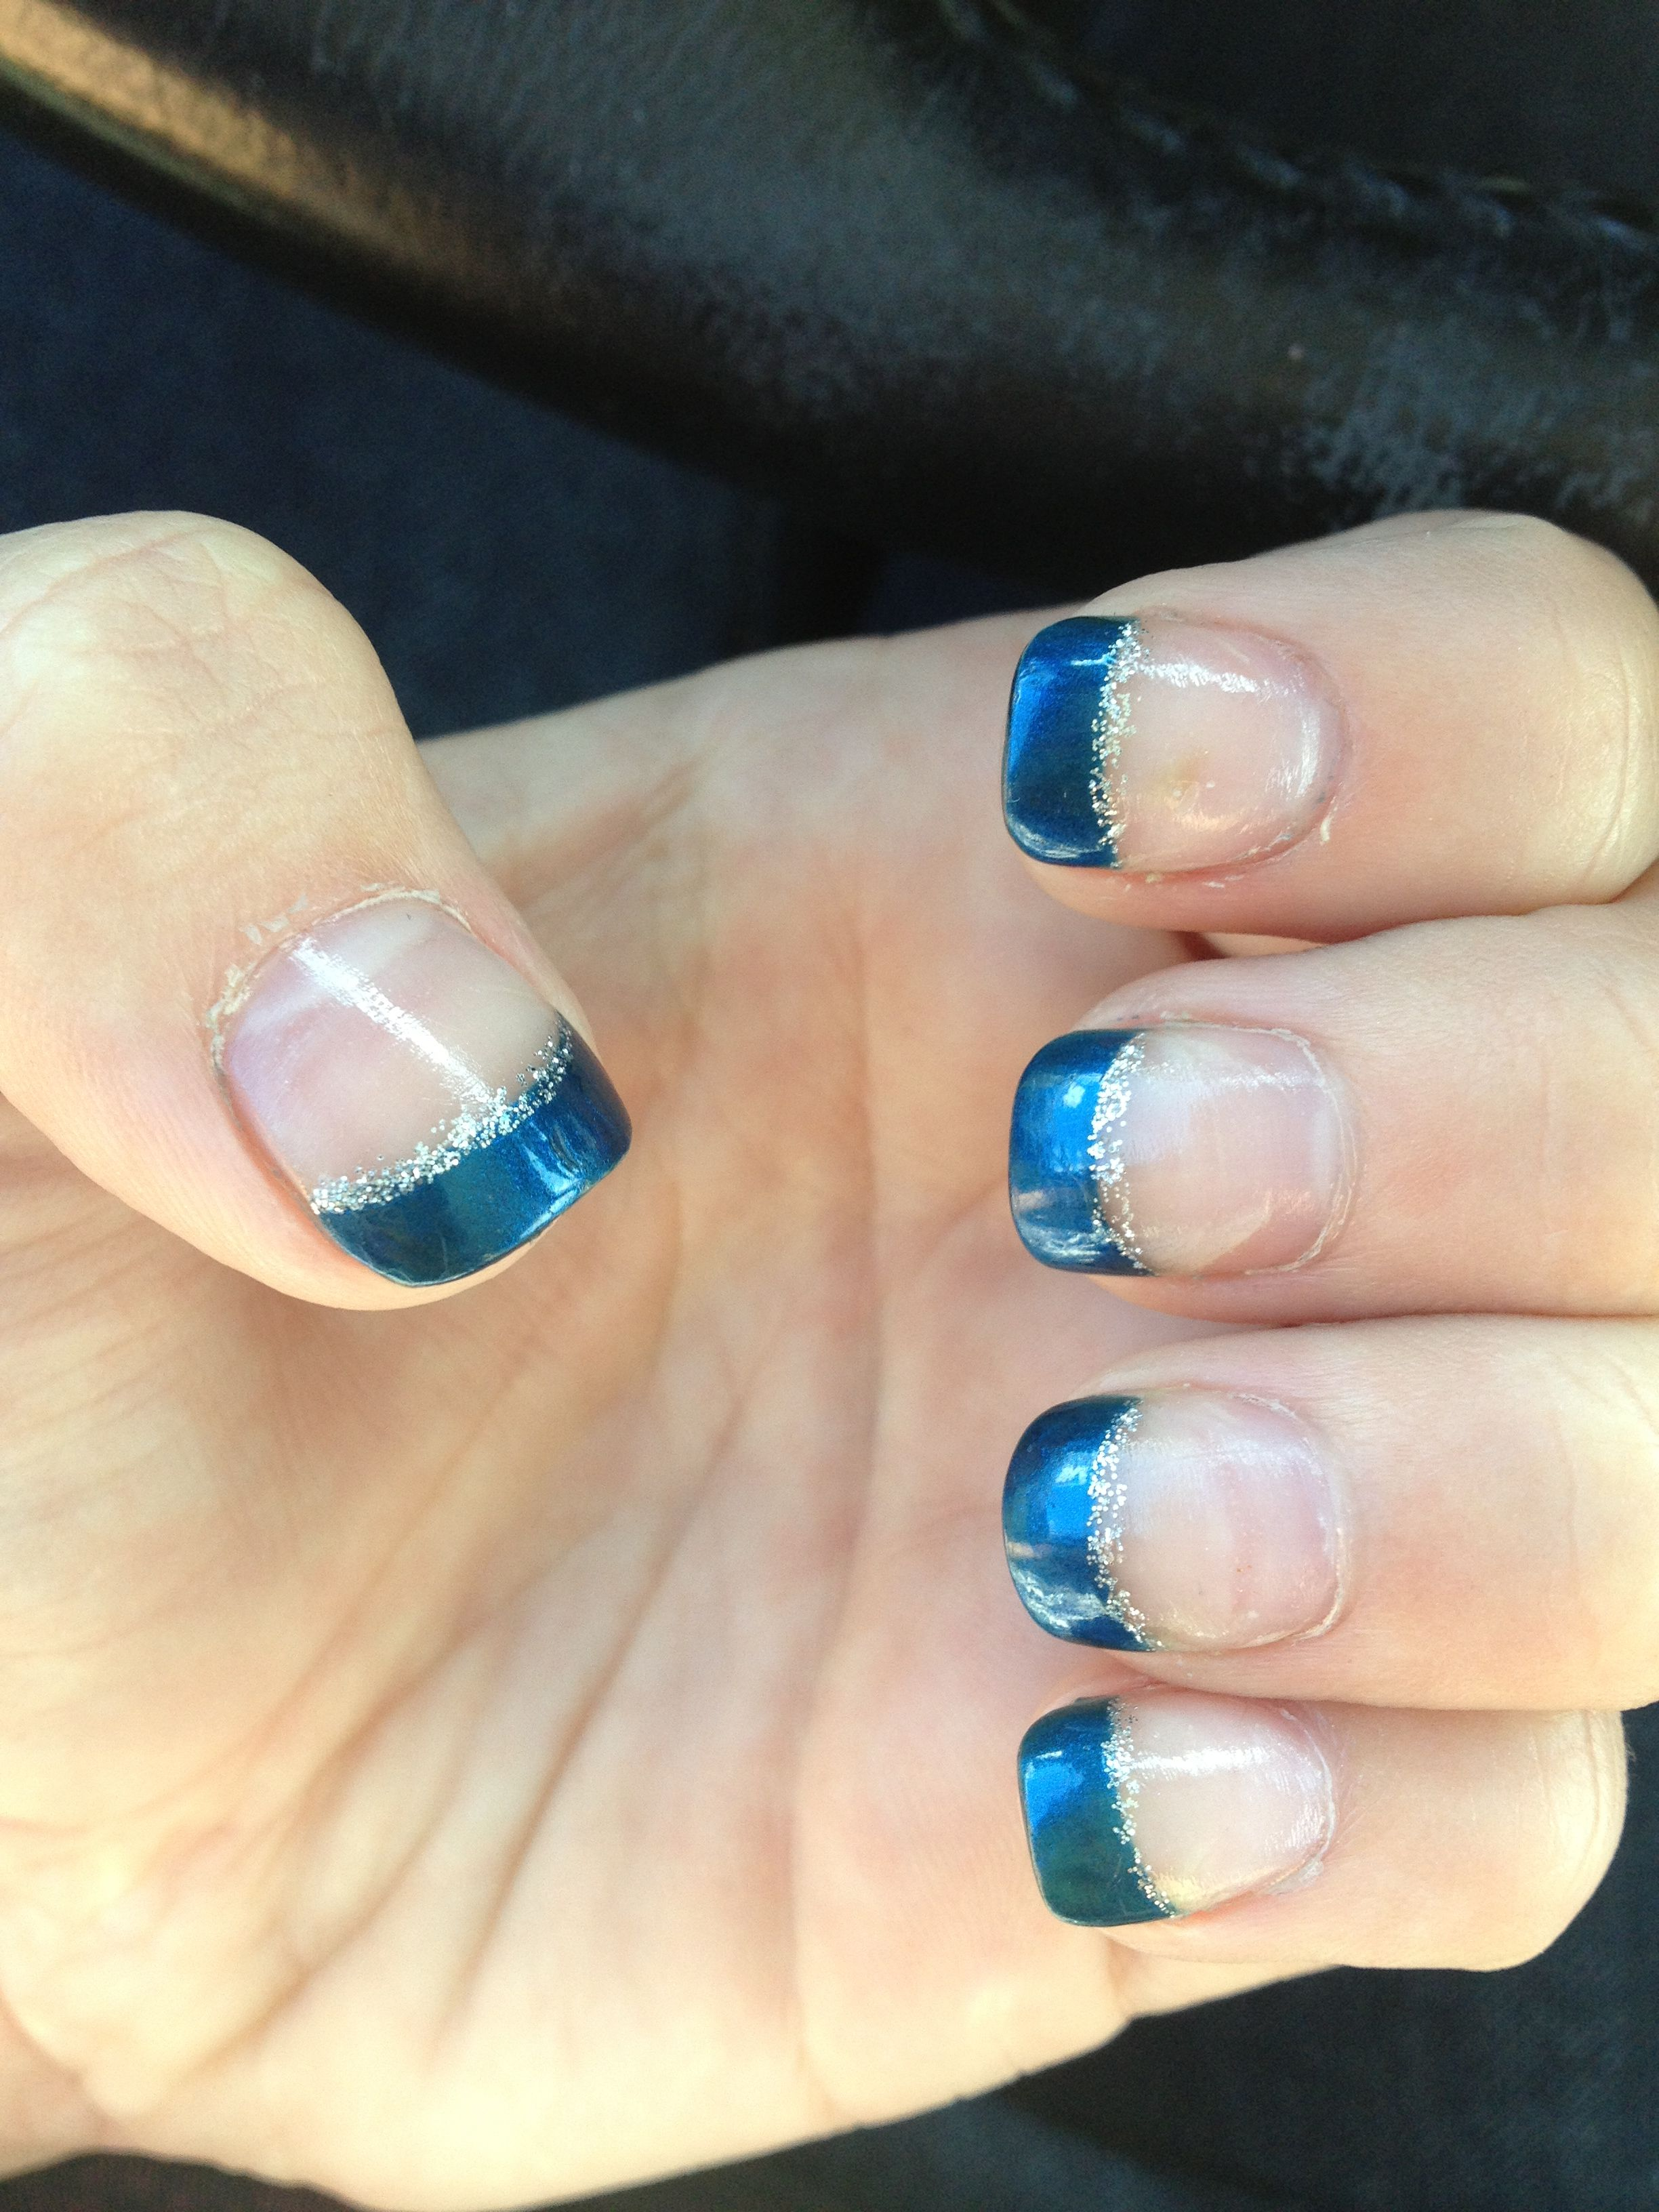 Acrylic nails, teal-ish, grey sparkle lining, French tips, cute from QT nail salon   Nail